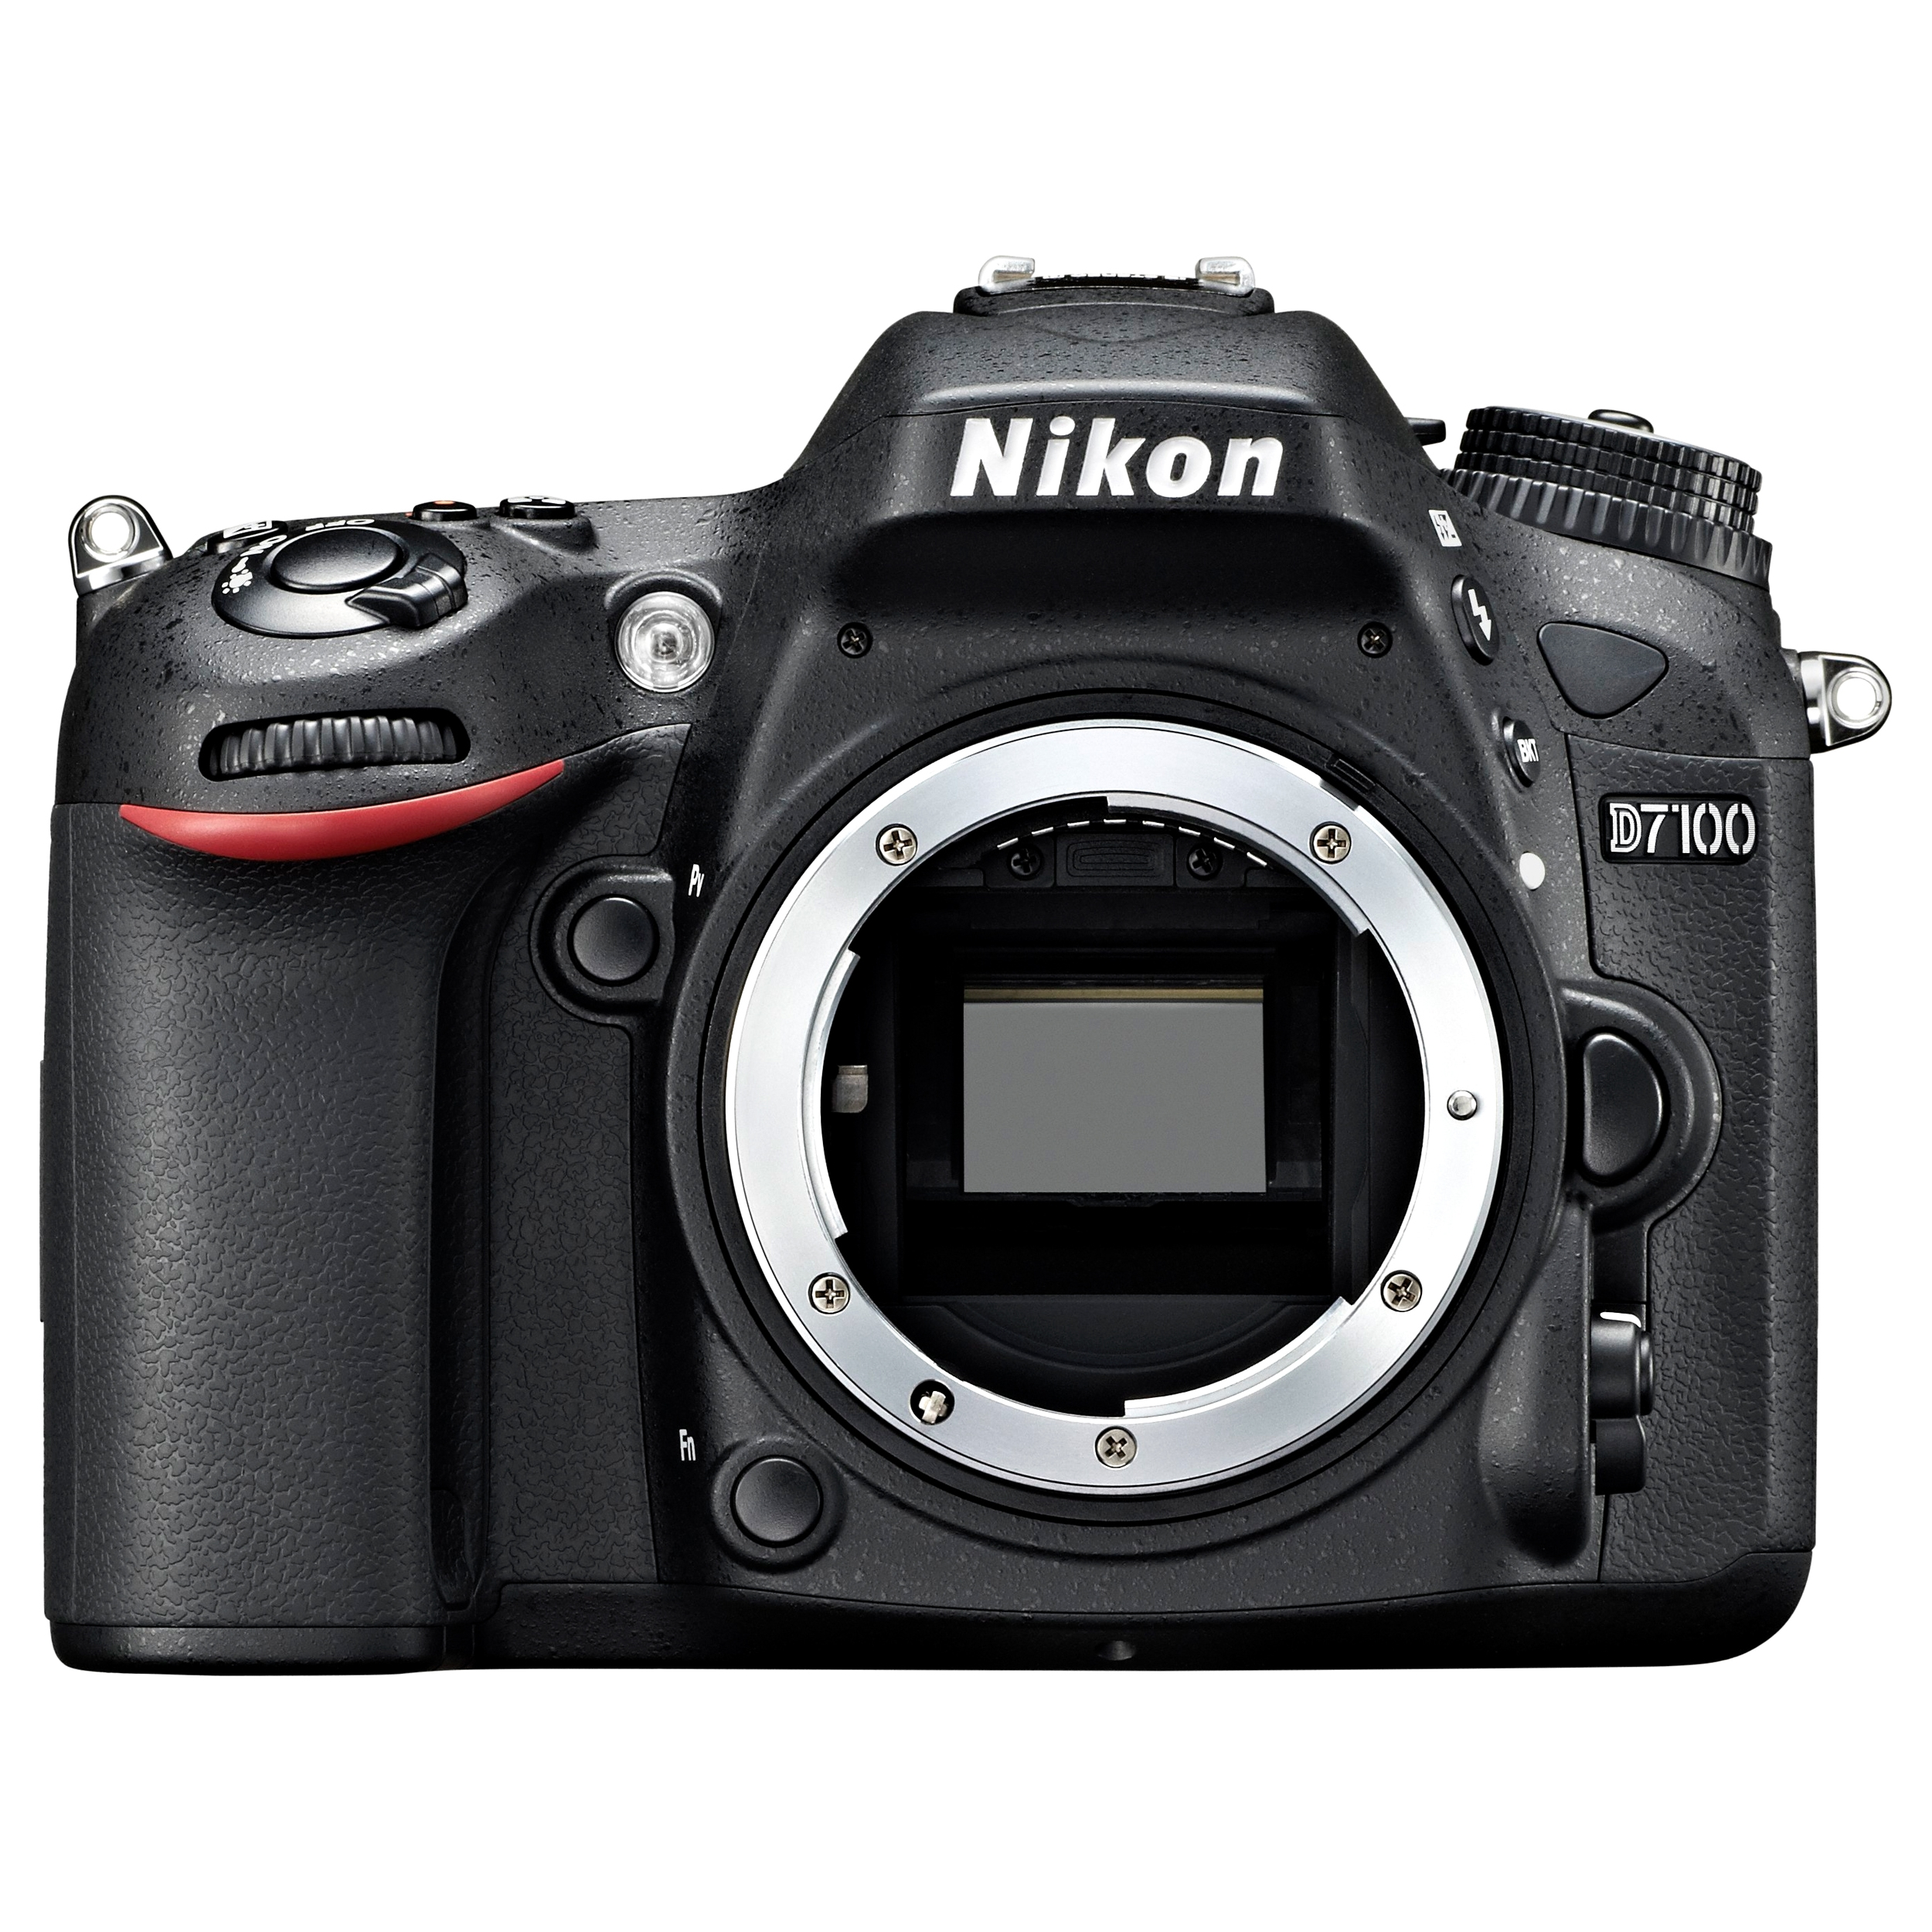 Nikon Black D7100 Digital SLR Camera with 24.1 Megapixels (Body Only)